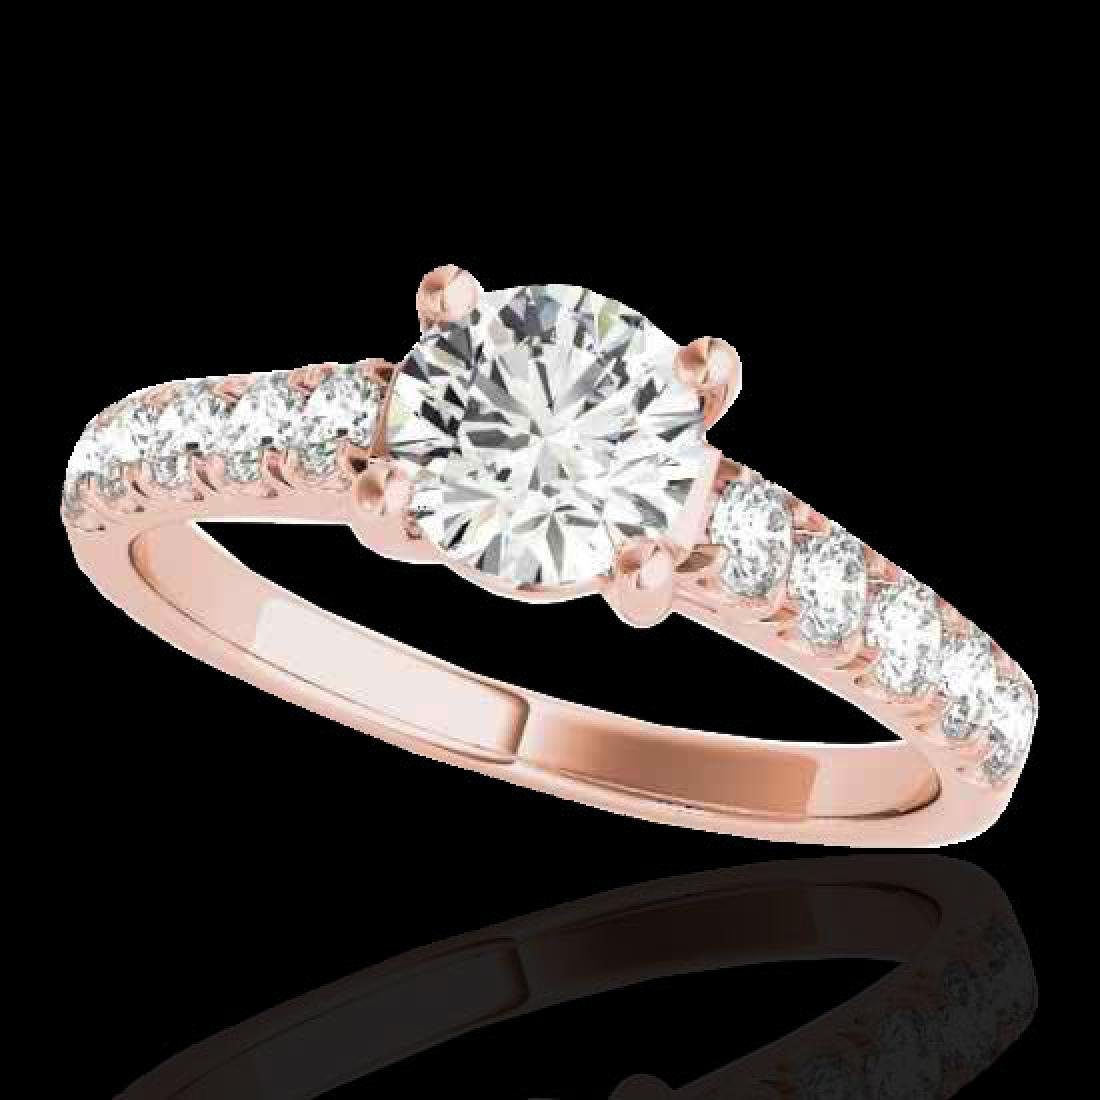 2.1 CTW H-SI/I Certified Diamond Solitaire Ring 10K